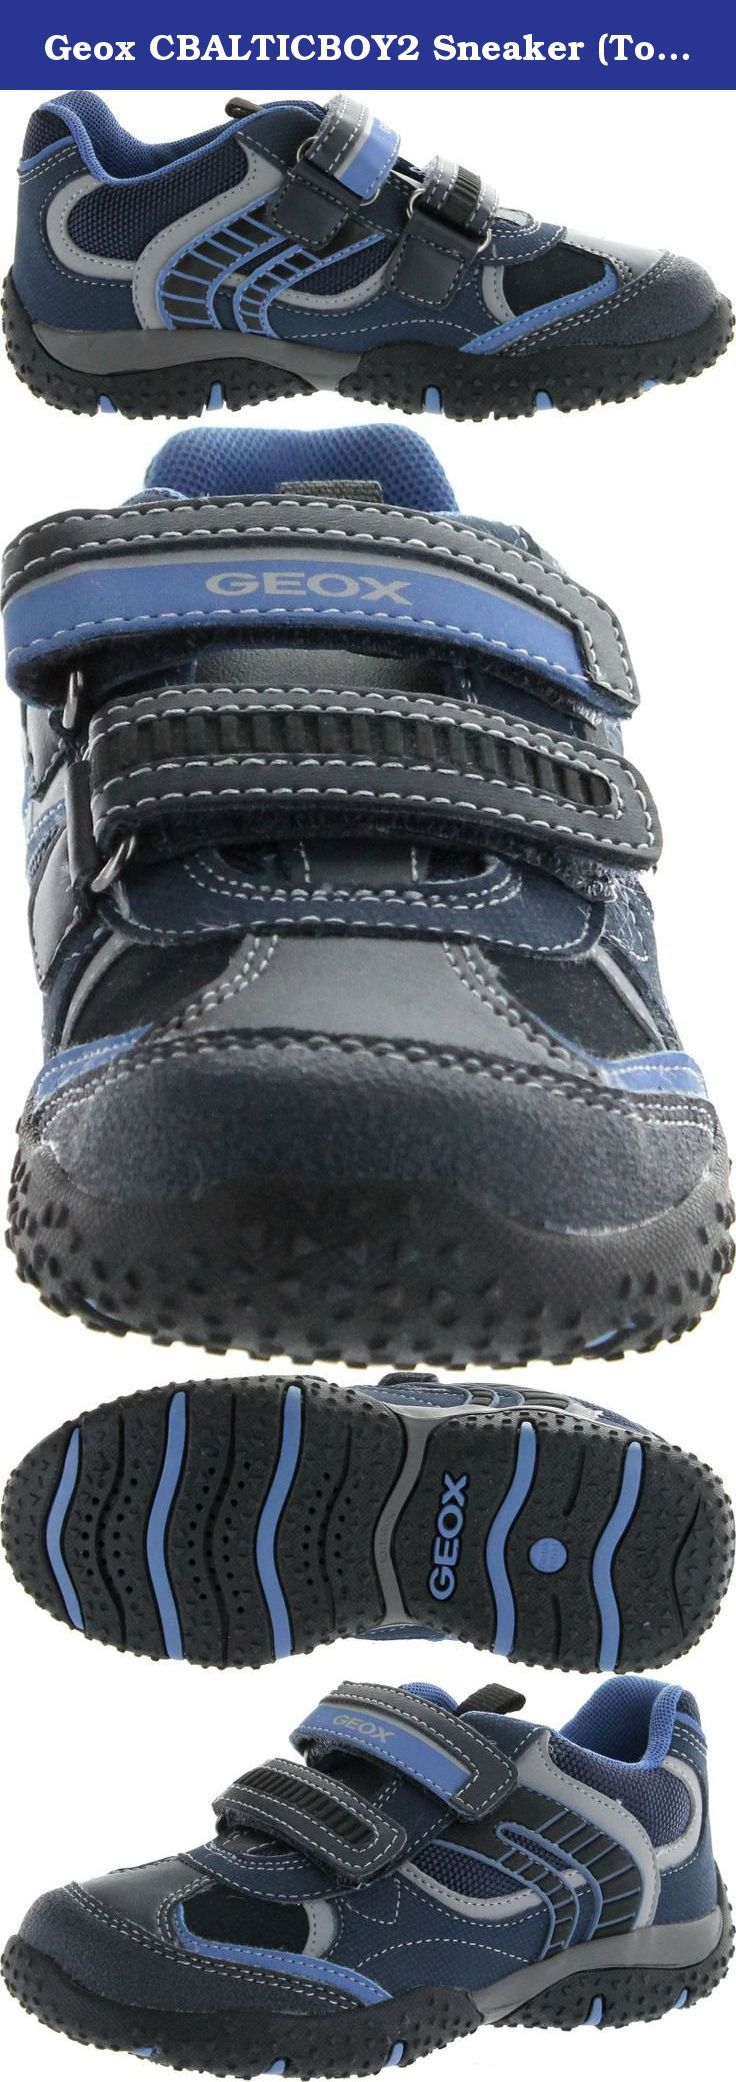 """Geox CBALTICBOY2 Sneaker (Toddler/Little Kid/Big Kid),Navy/Light Blue,26 EU (9 M US Toddler). Geox is an Italian brand that has made a big name for itself in international markets. They are known for their patent technology which makes amazing """"shoes that breathe."""" Geox shoes have a patented sole which allows for sweat to leave through tiny holes on the sole of the shoe. It does all of this while maintaining a waterproof membrane in the sole to disallow water from getting in. Geox has…"""